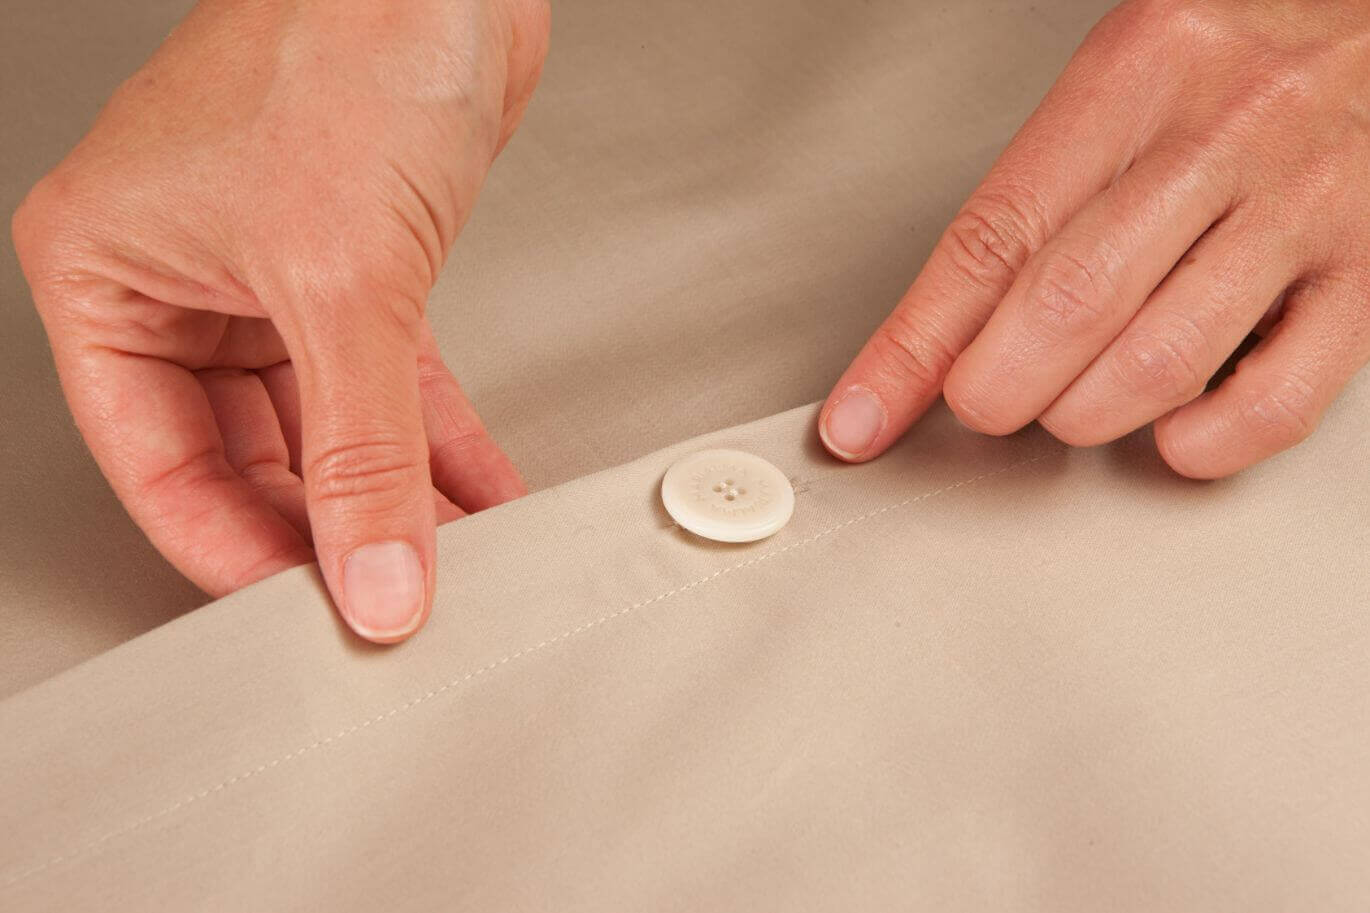 close up of button from beige bed sheets by marialma